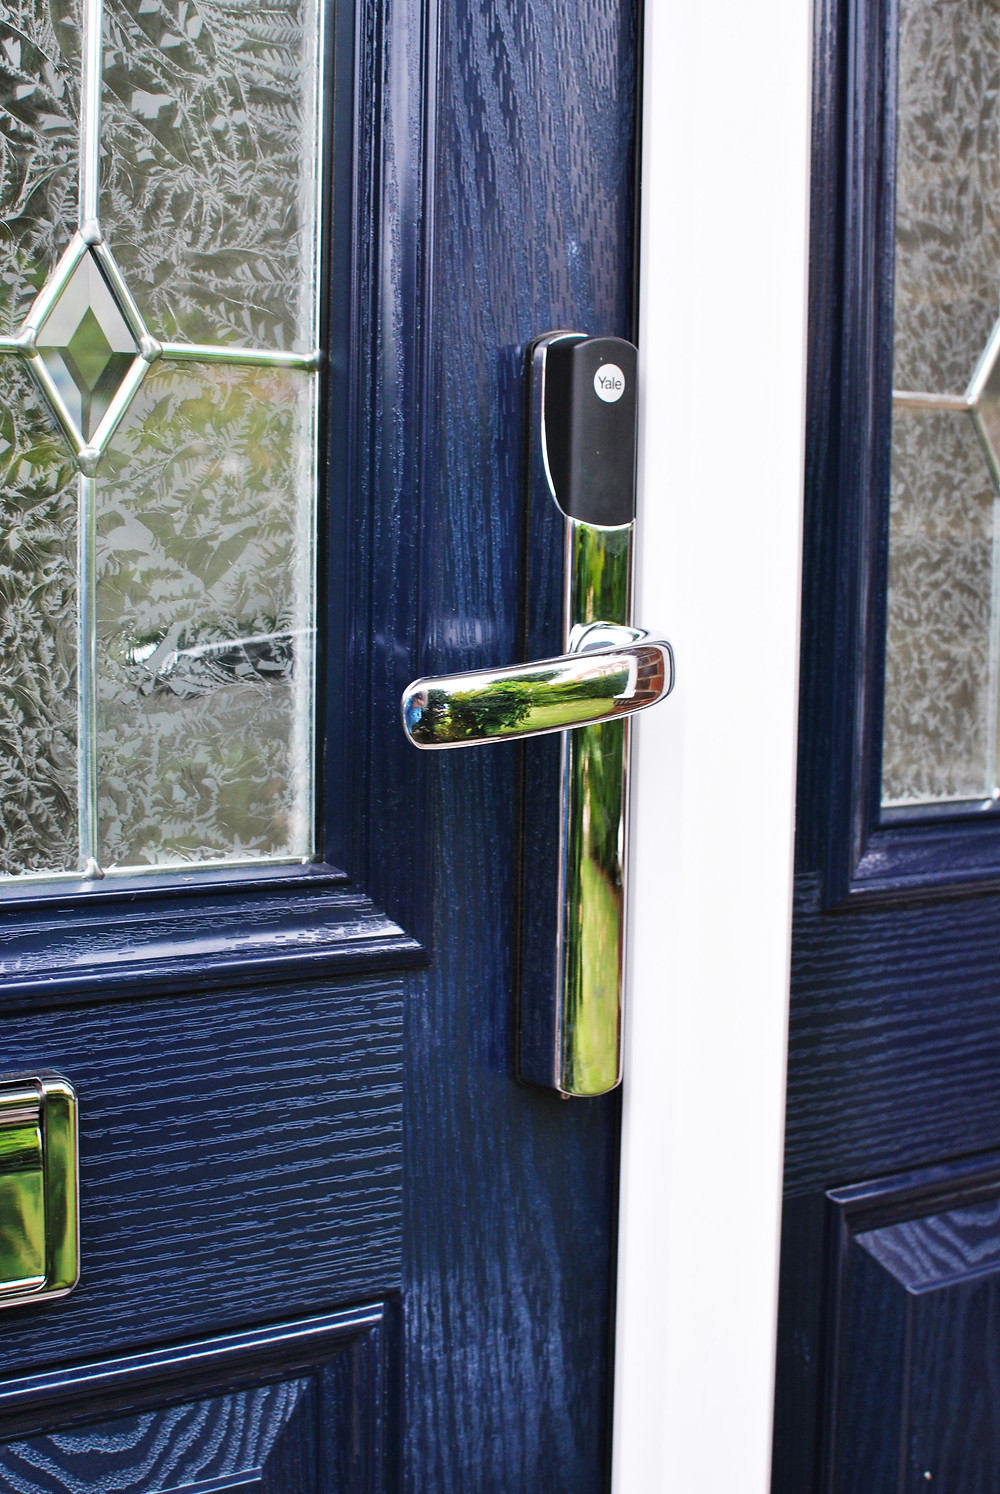 conexis - Keyless door lock - keyless lock - yale - middlesbrough - installers